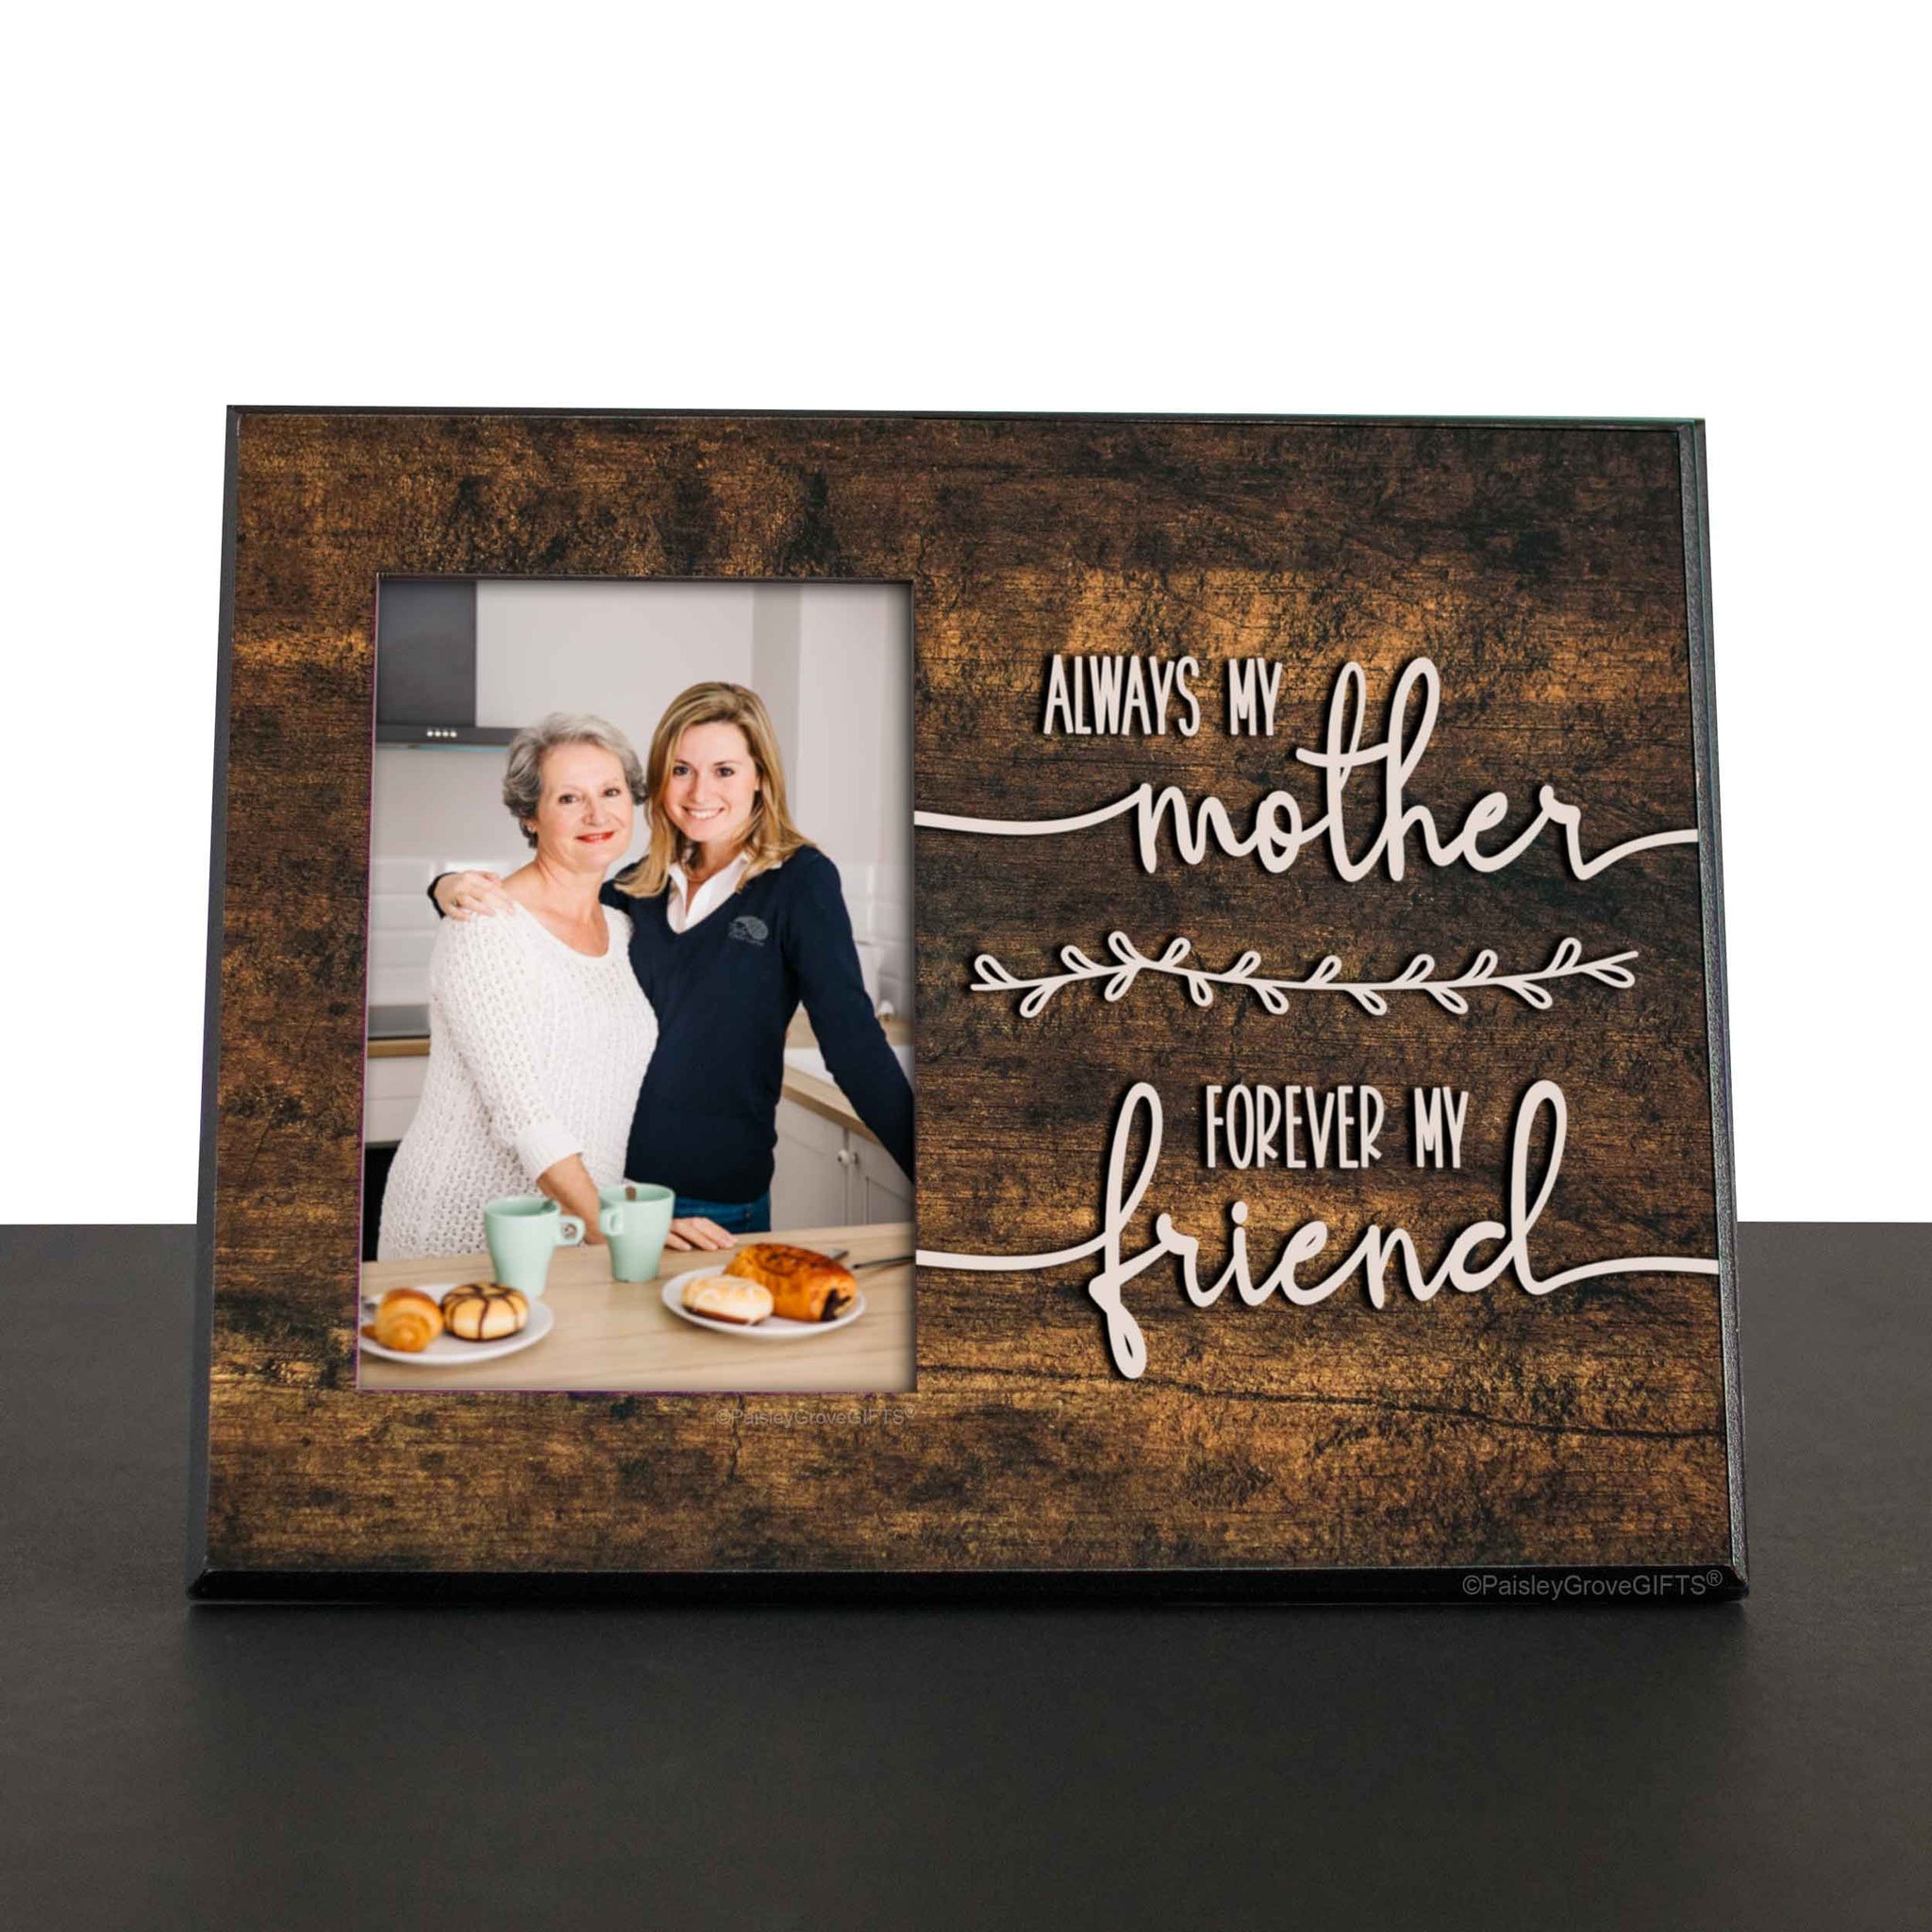 CopyrightPaisleyGroveGIFTS S201c1 Sentimental gift for mom heartwarming mom quote on desk shelf or mantle